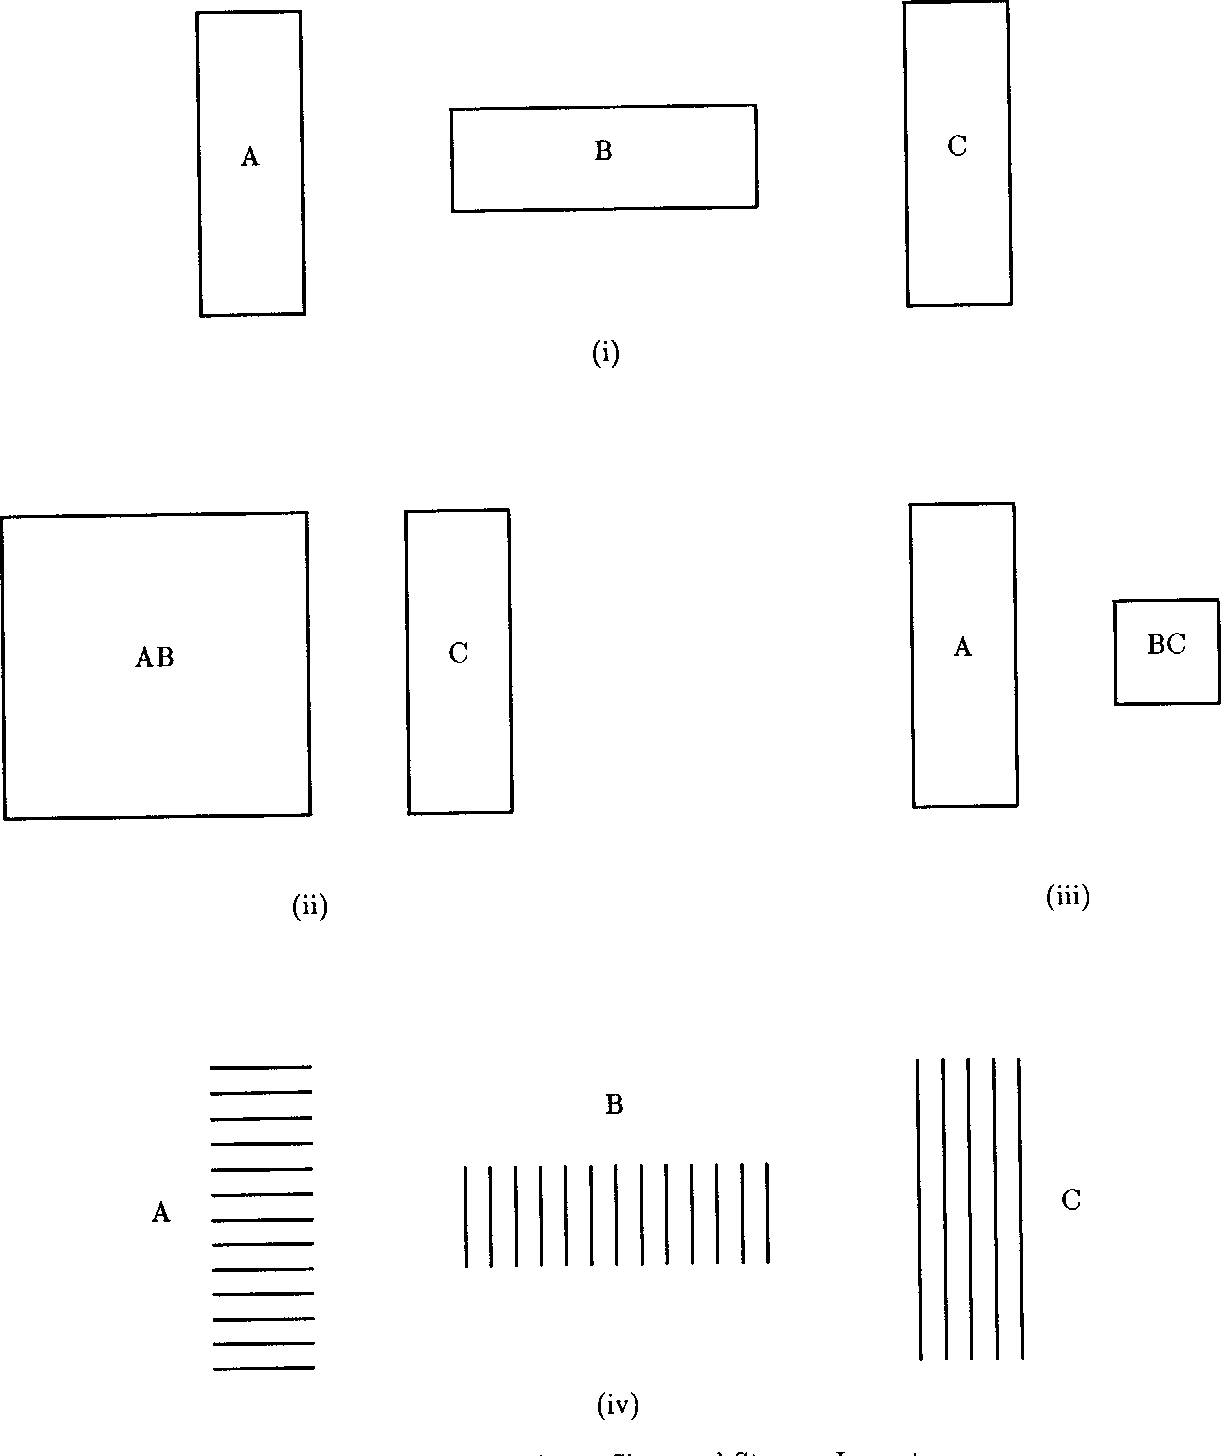 Figure 1: Array Sizes and Storage Layouts